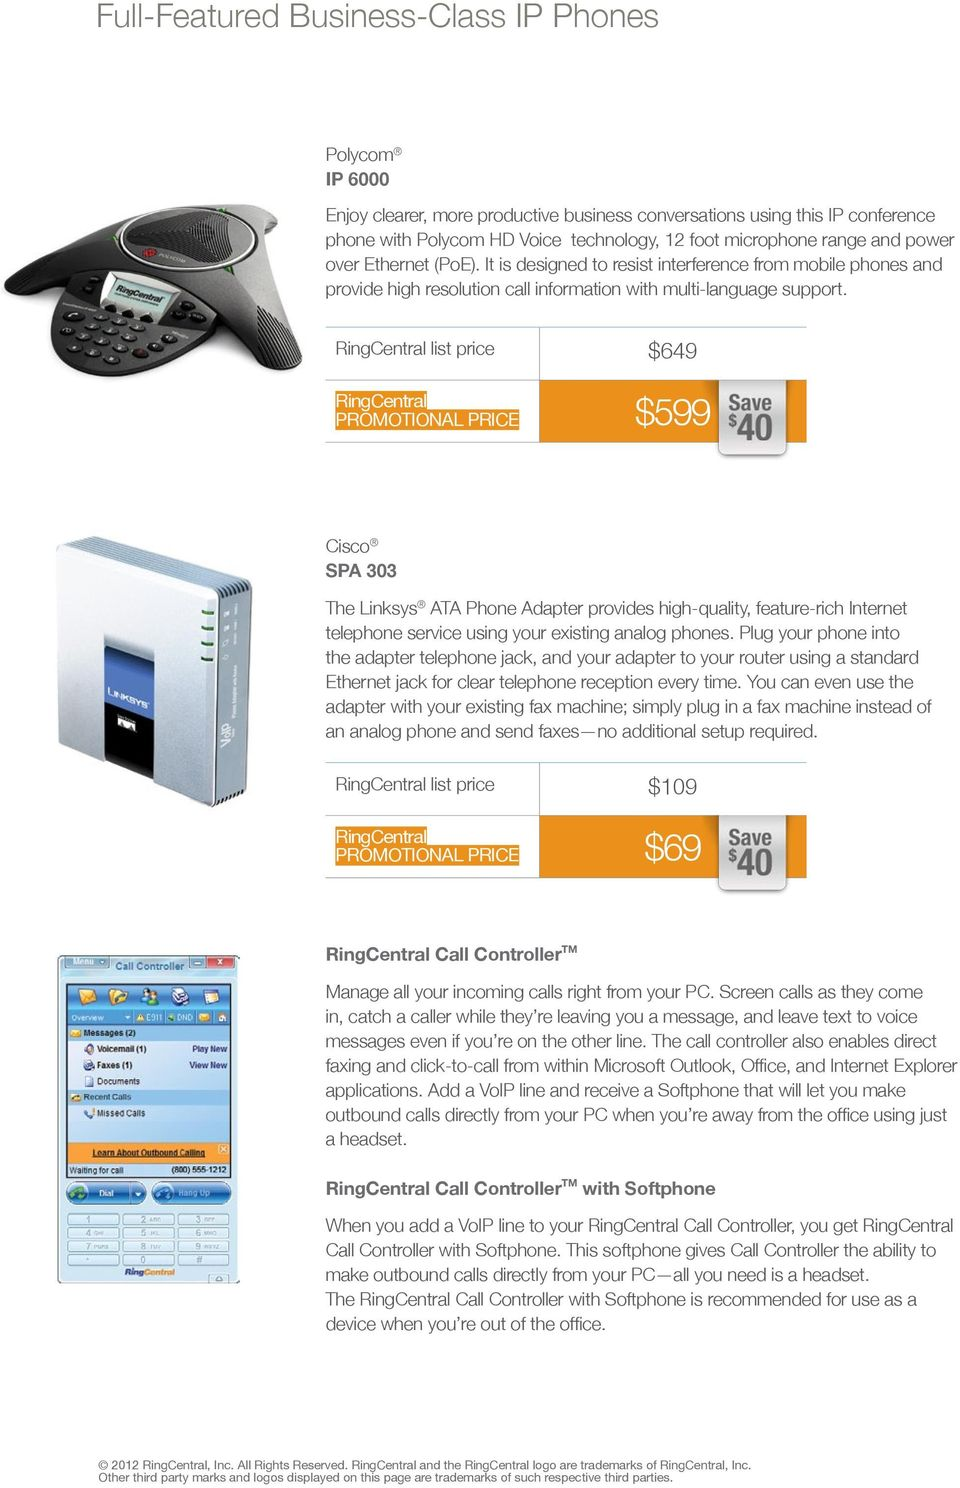 RingCentral list price $649 RingCentral PROMOTIONAL PRICE $599 Cisco SPA 303 The Linksys ATA Phone Adapter provides high-quality, feature-rich Internet telephone service using your existing analog